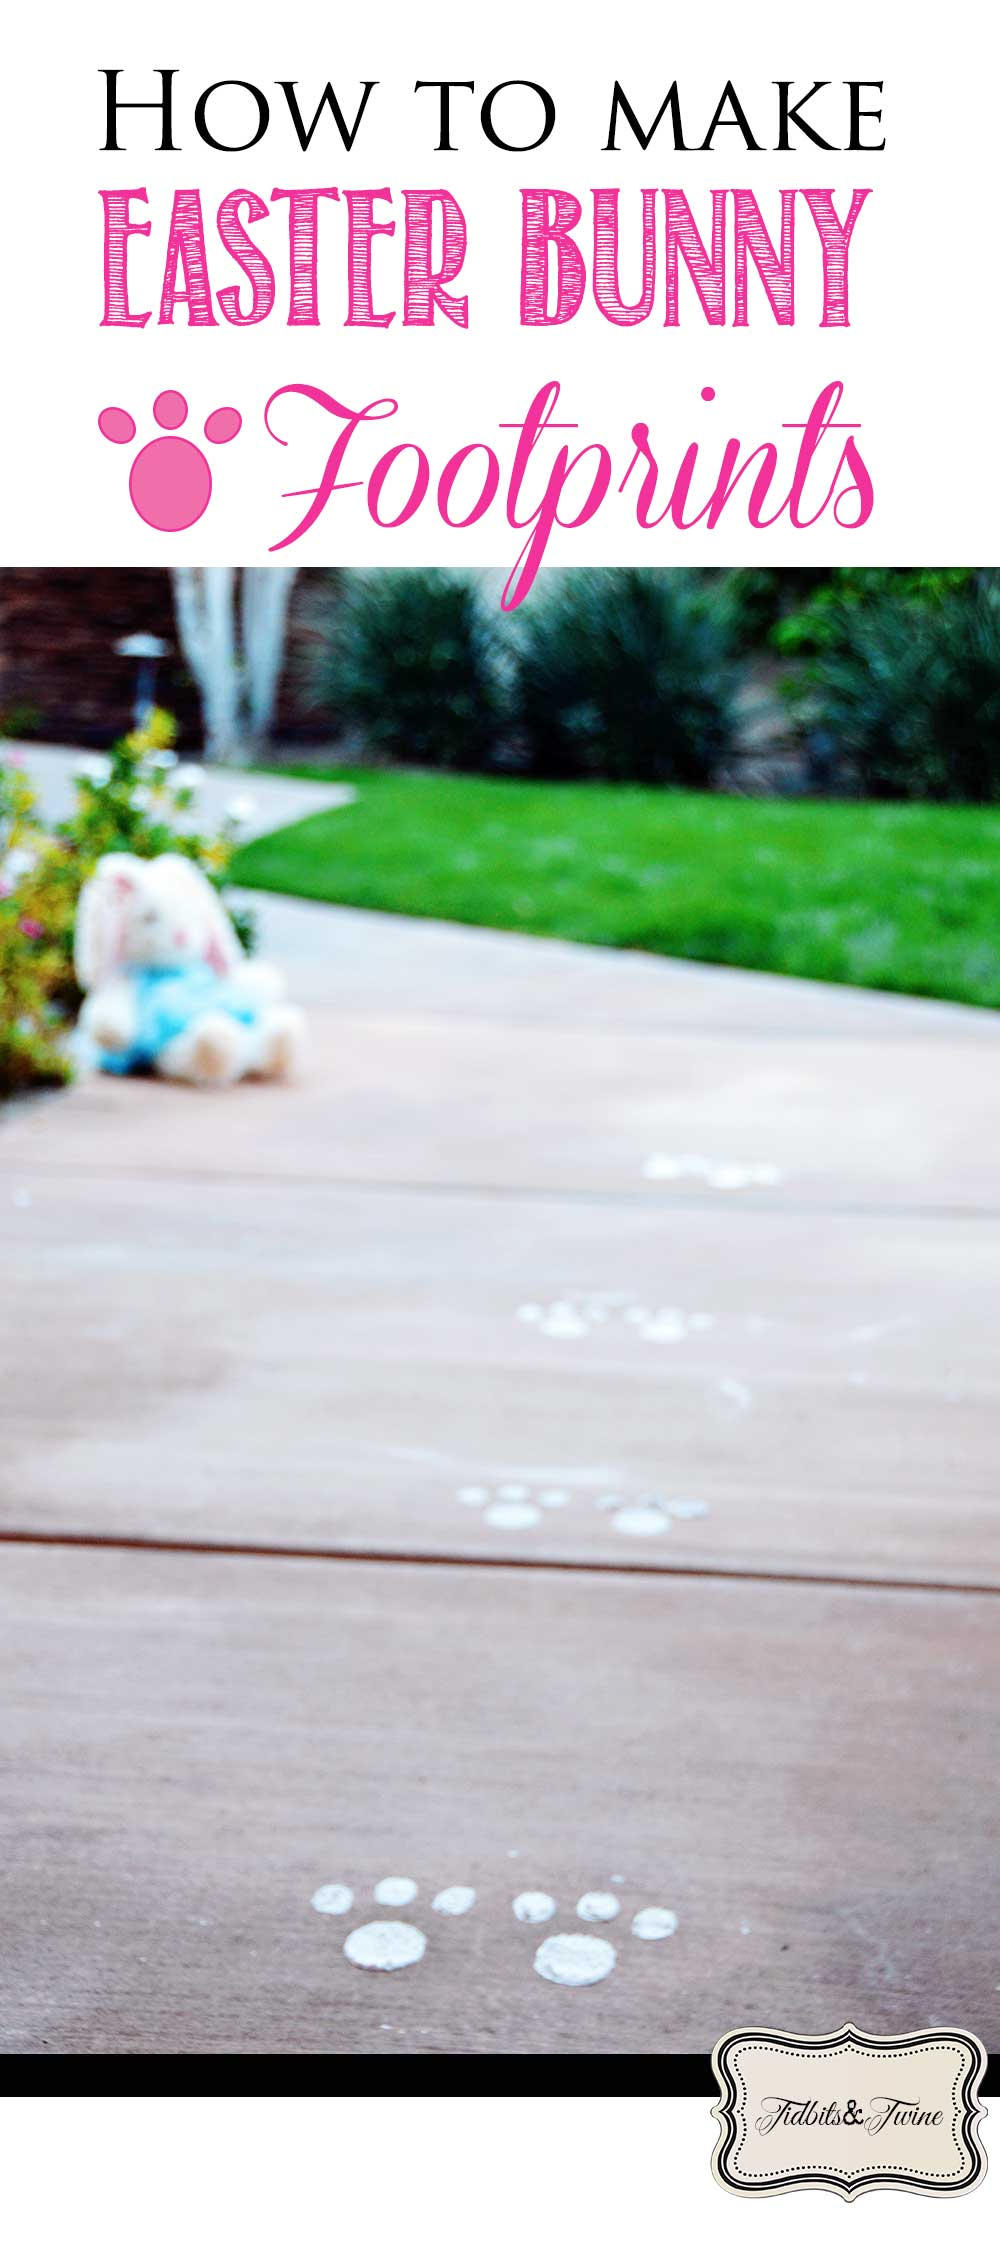 How To Make Bunny Footprints With Baby Powder : bunny, footprints, powder, Easter, Bunny, Footprints, Flour